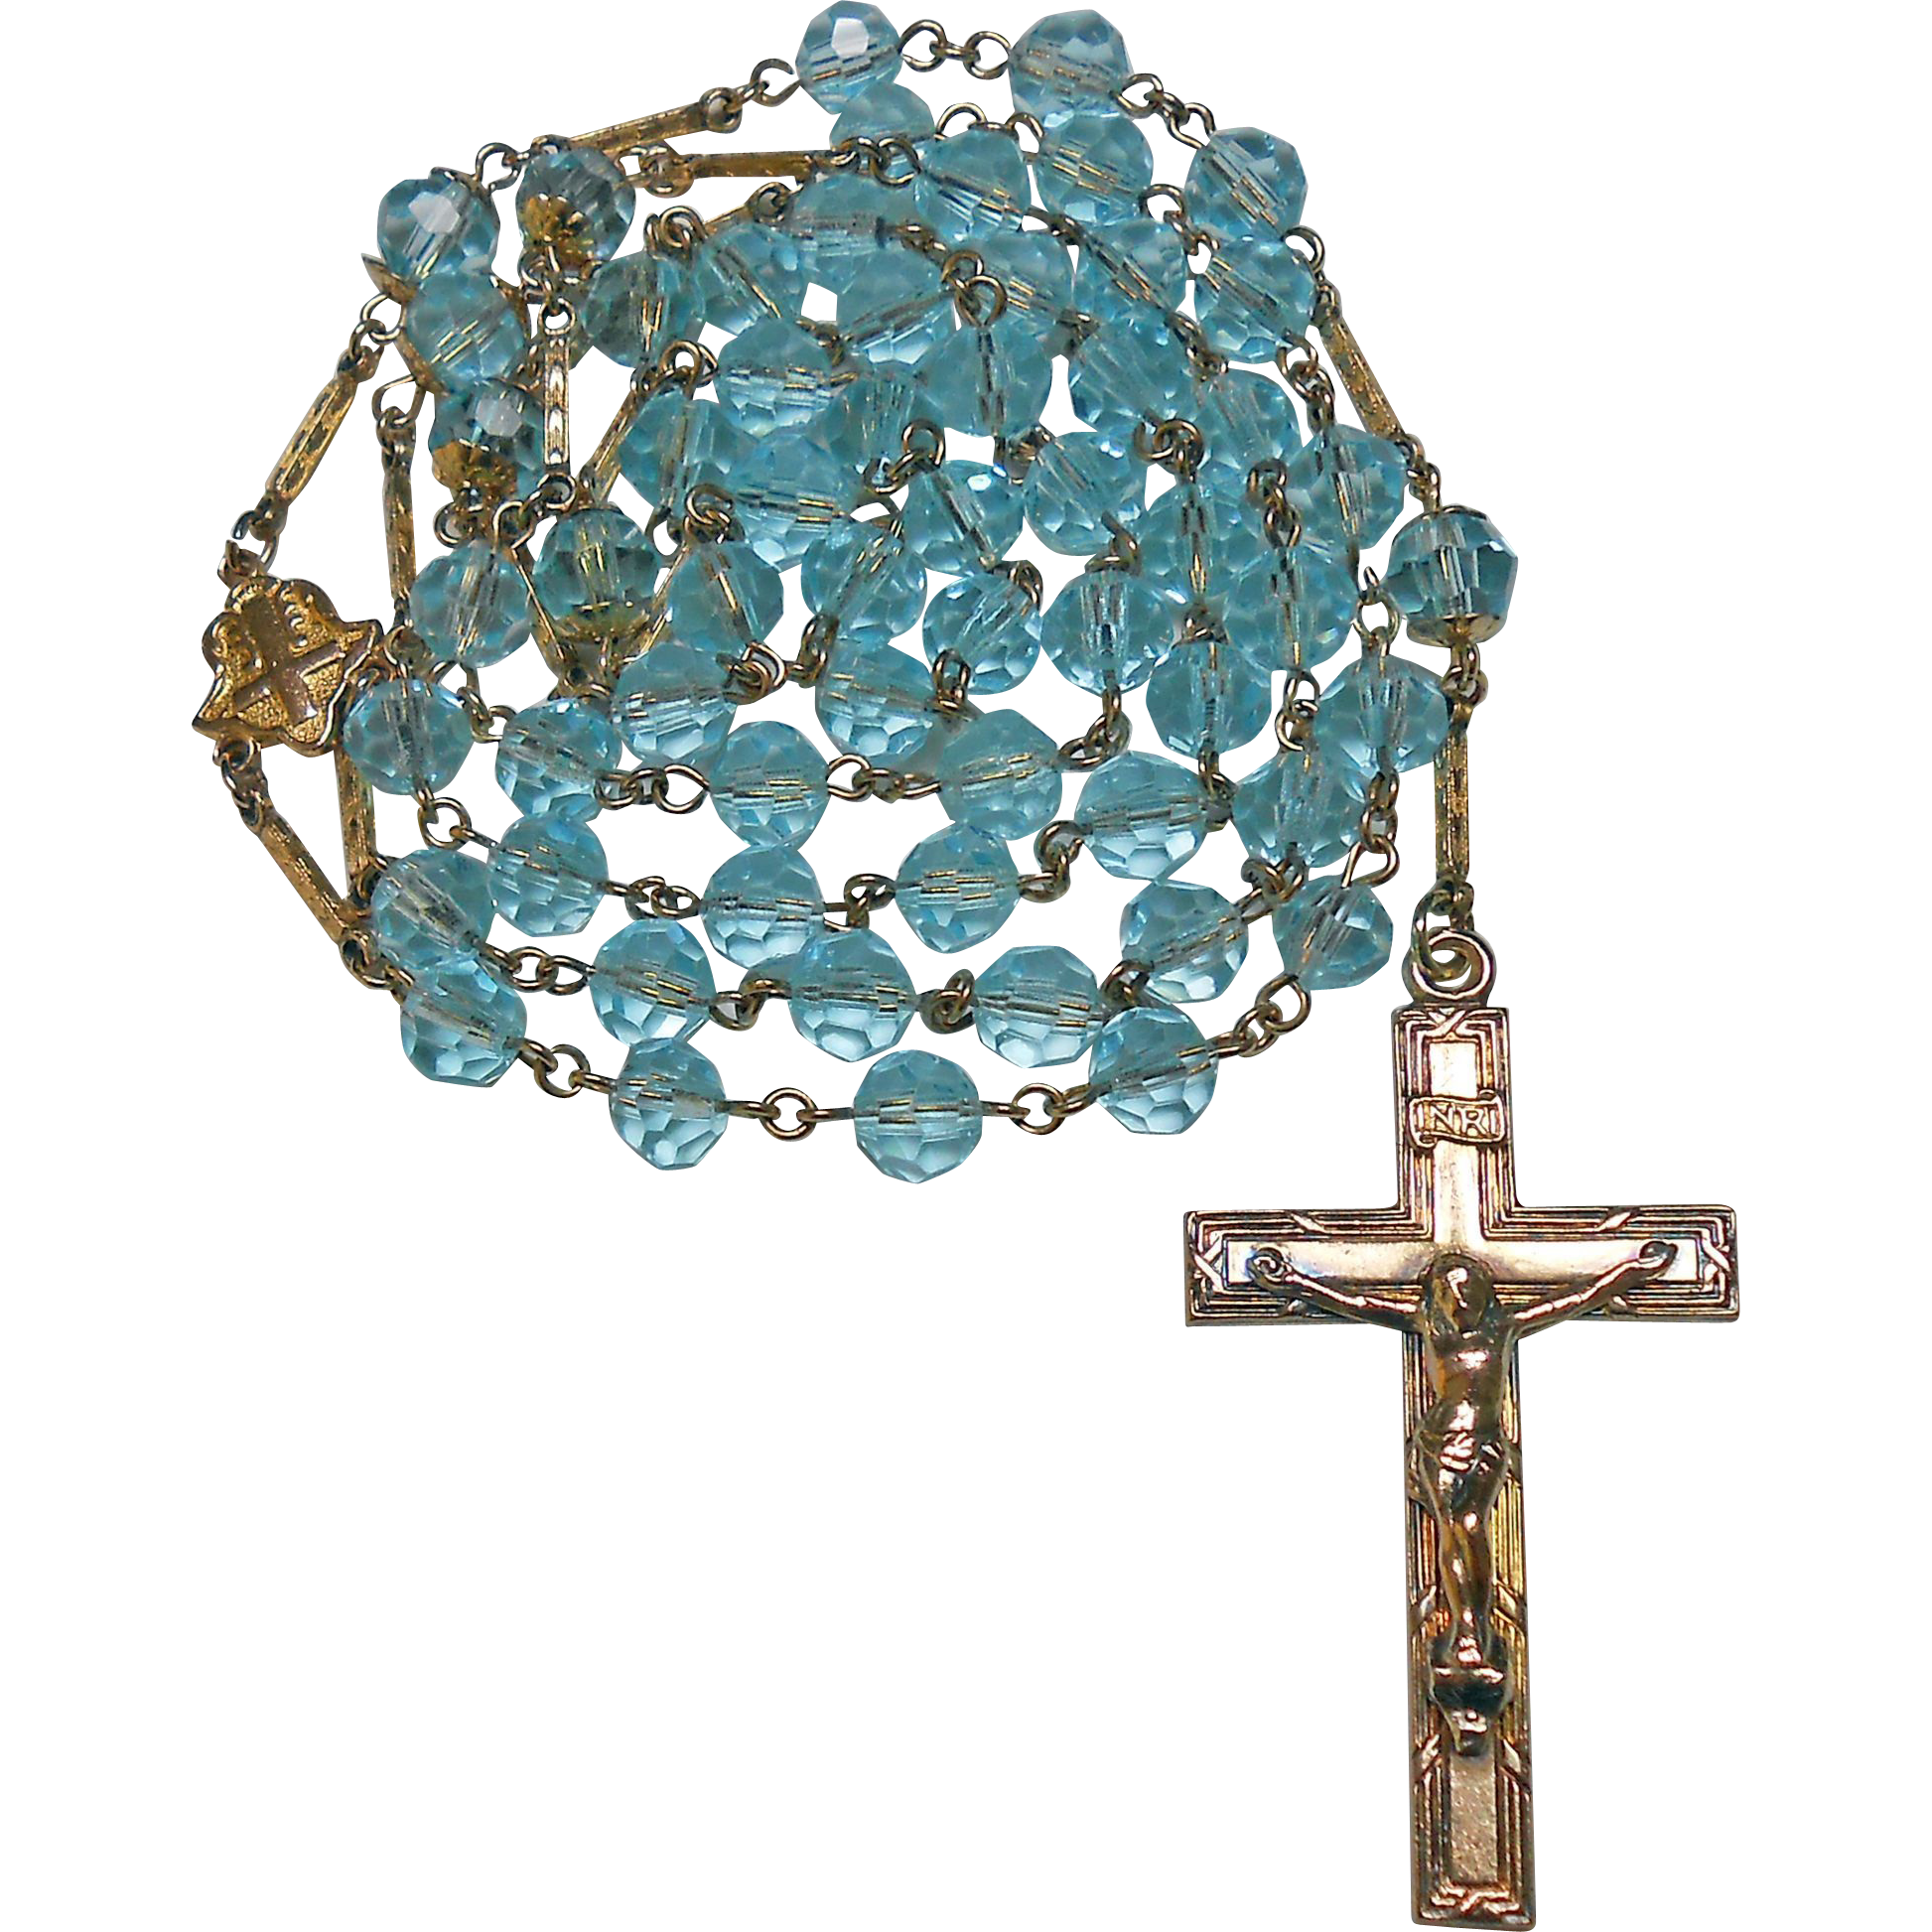 Pristine 1940s Gold-Filled & Aqua Glass Rosary – Fancy Extenders